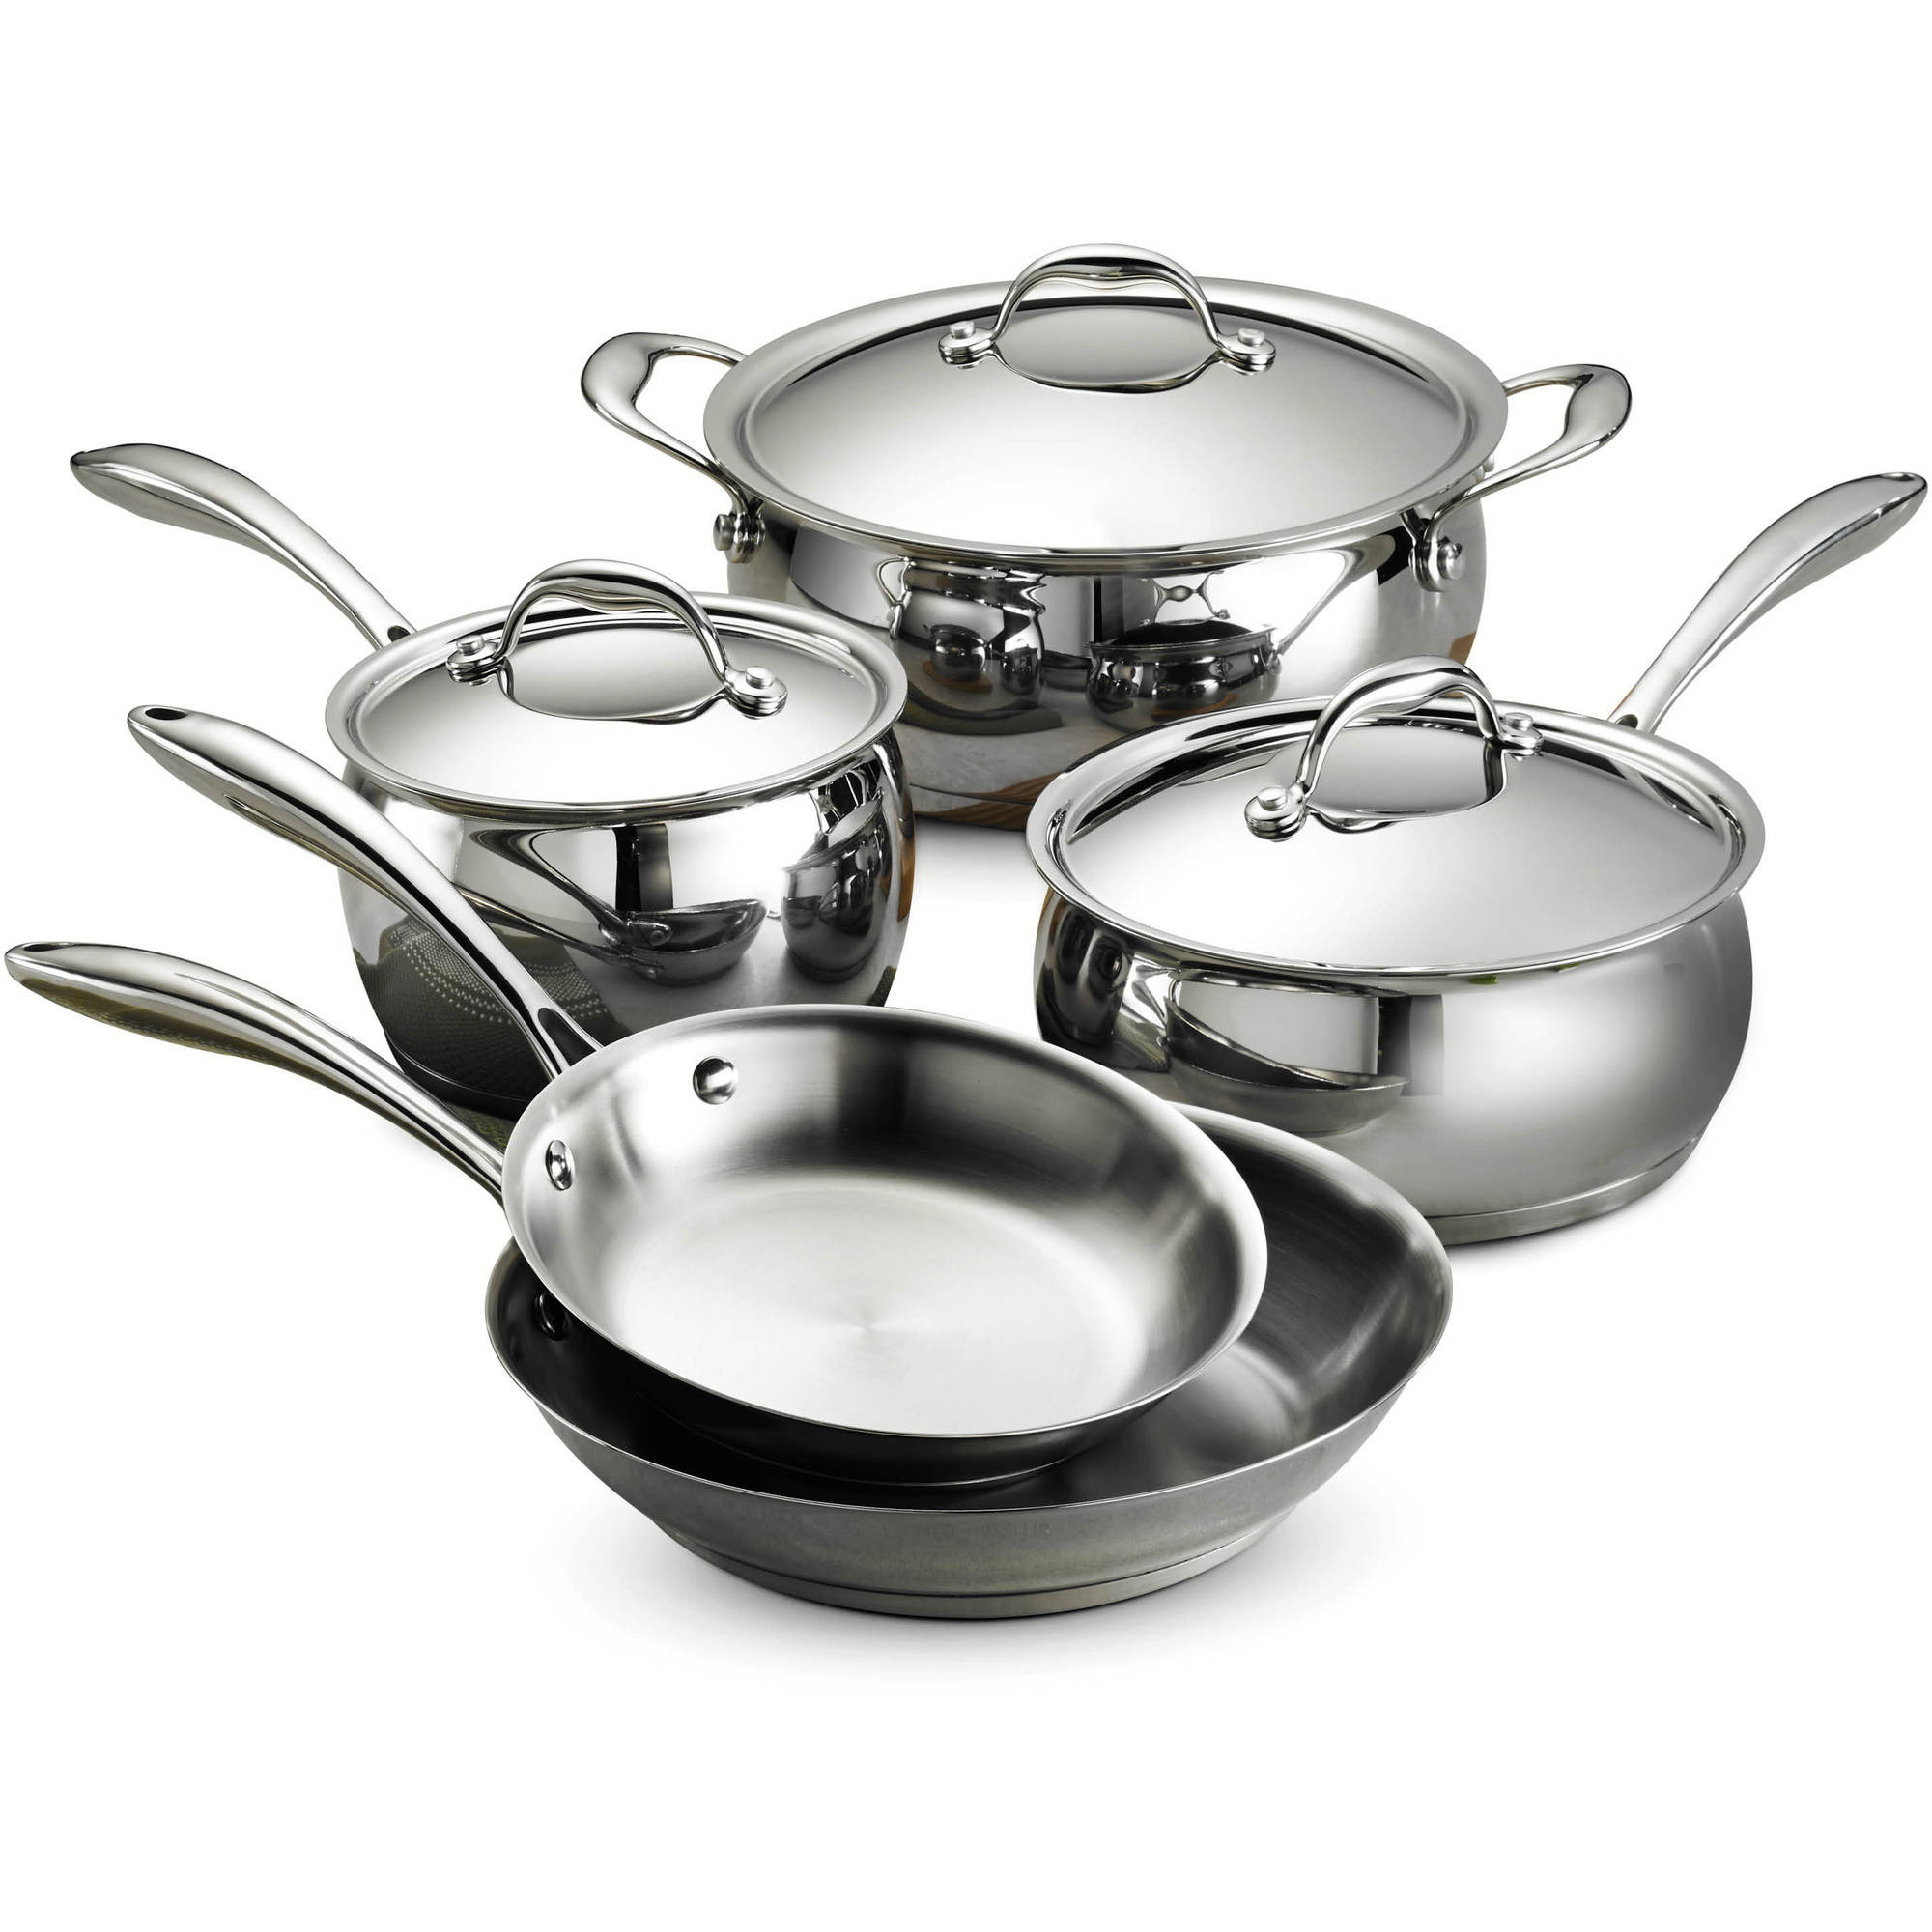 Tramontina Gourmet Domus 18 10 Stainless Steel Tri-Ply Base 8-Piece Cookware Set by Tramontina USA Inc.